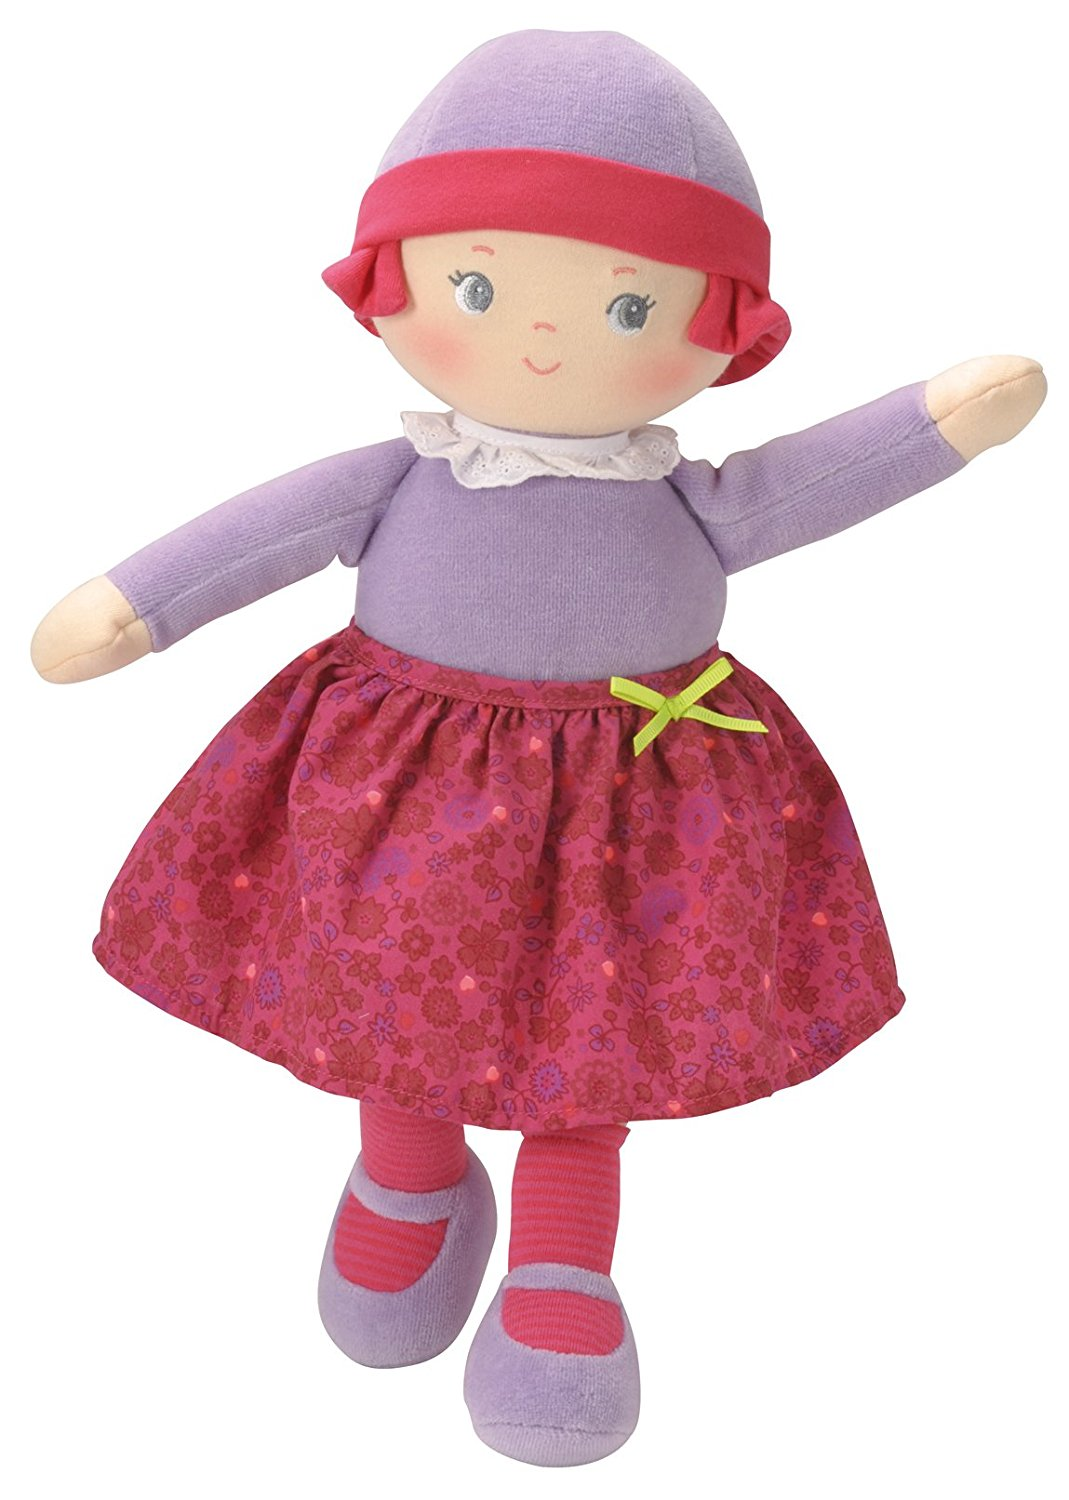 Mon Doudou Lili Grenadine's Heart, This pretty in pink all-cloth doll with embroidered features makes a great... by